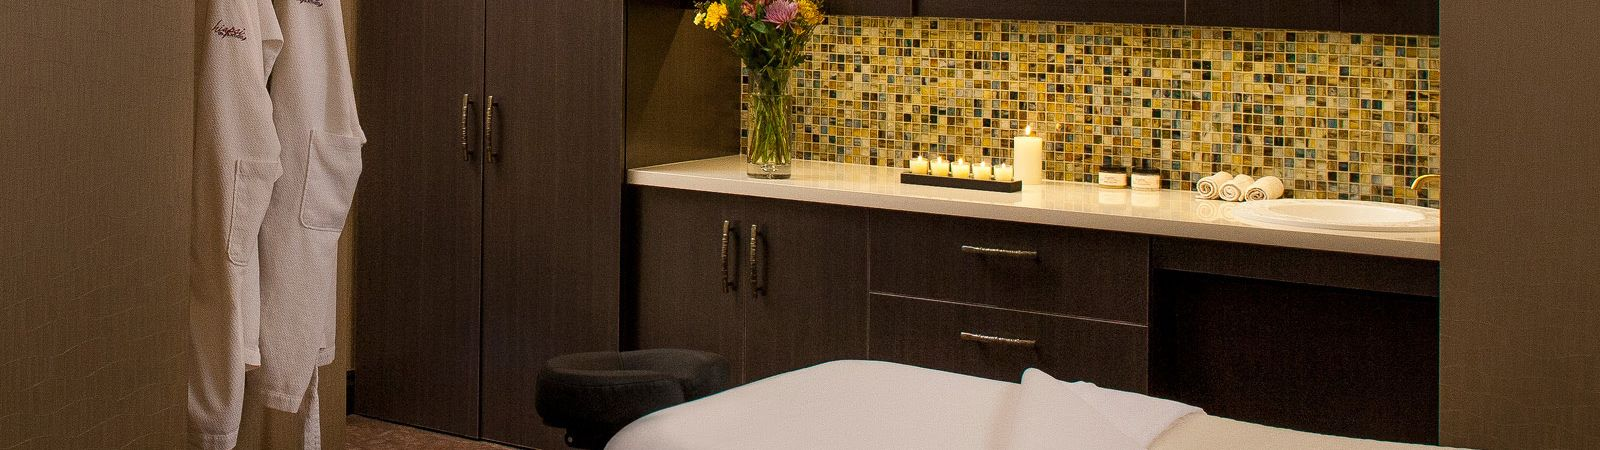 Spa Hotel Package Tucson